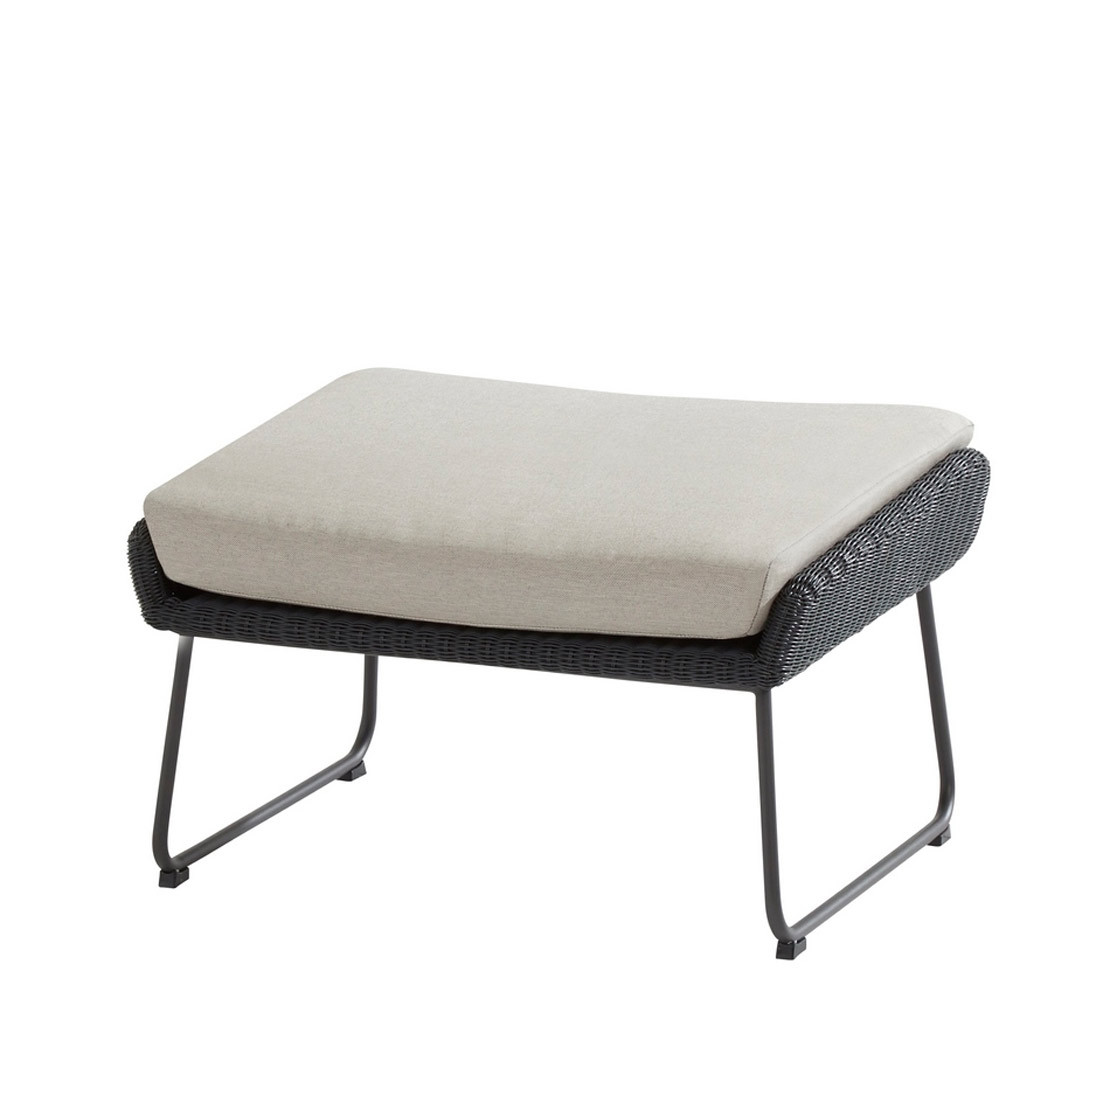 Avila anthracite hocker